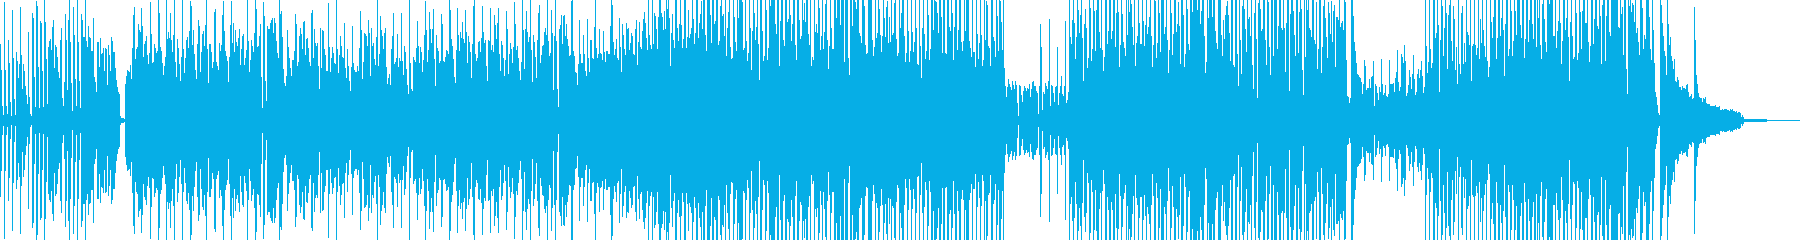 Cartoon-style piano ... Second half + drums's reproduced waveform